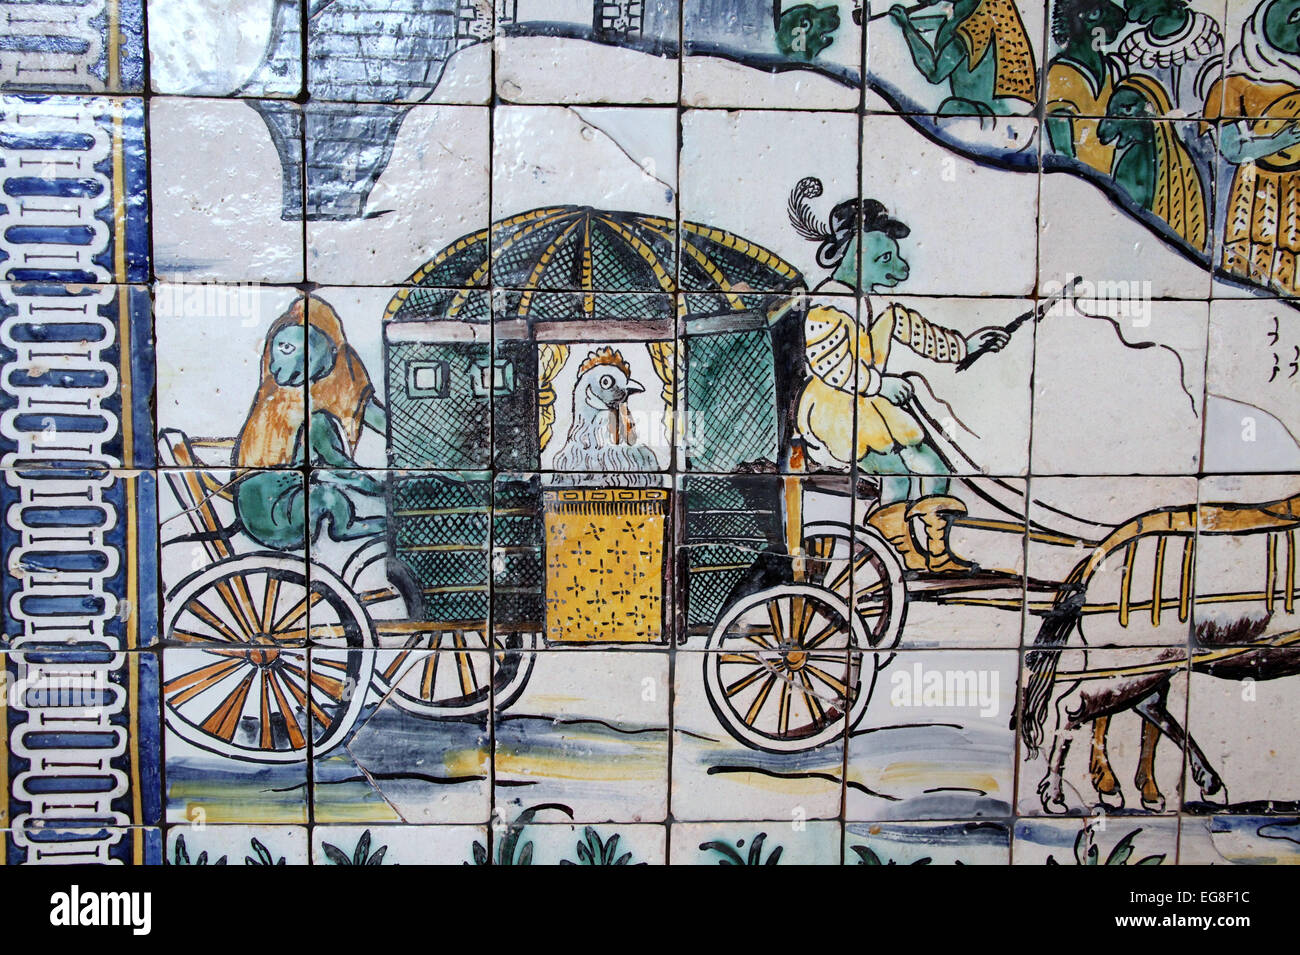 The Chickens Wedding on display at the National Tile Museum in Lisbon - Stock Image